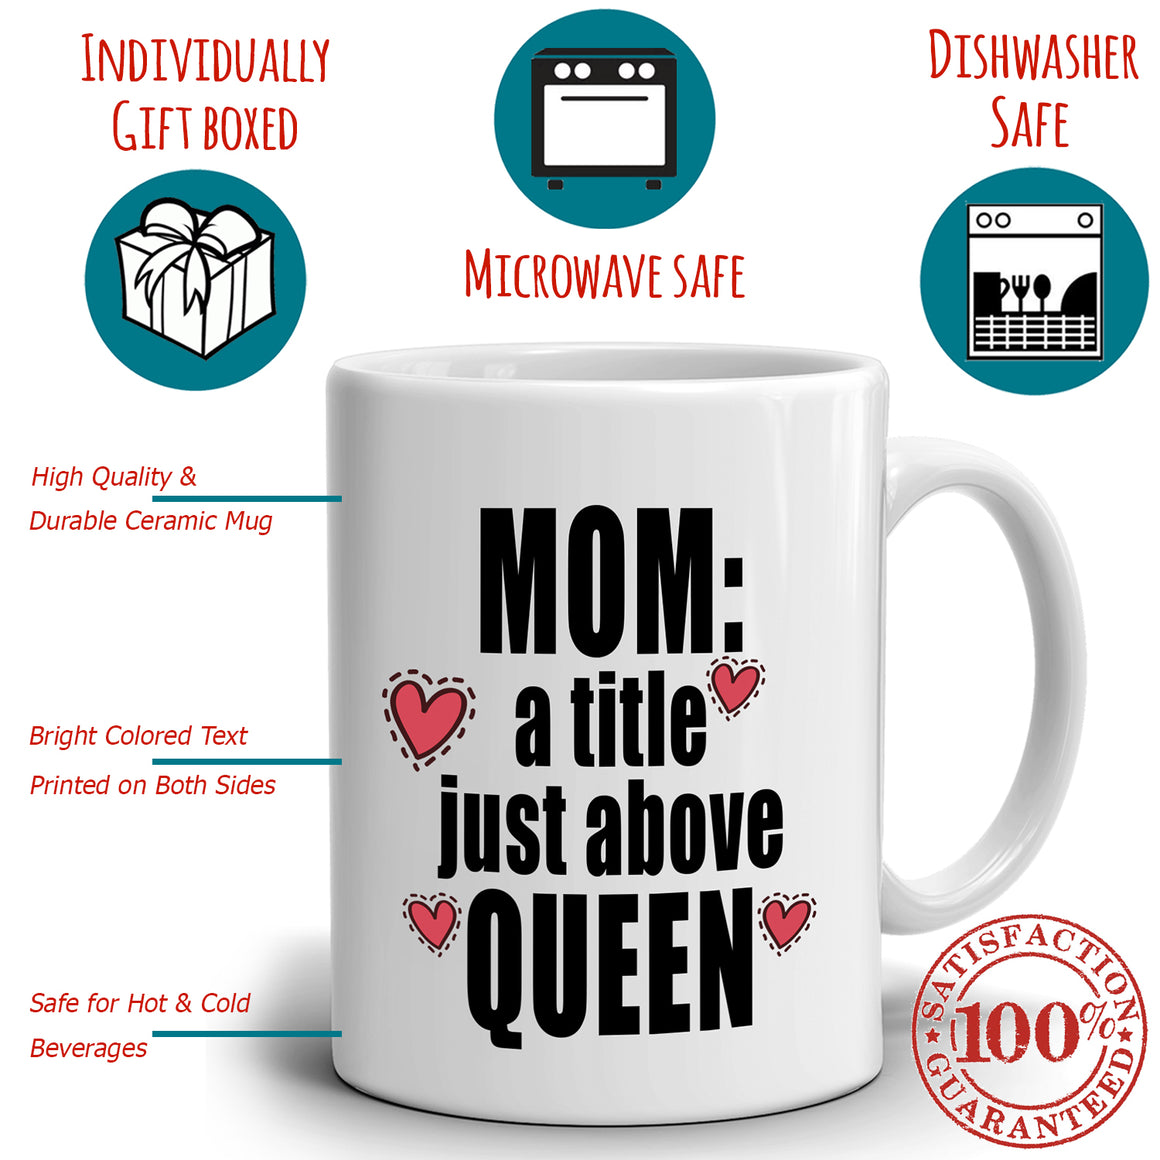 Funny Mothers Day Birthday Gifts Mug for Mom A Tittle Just Above Queen Coffee Cup, Printed on Both Sides!